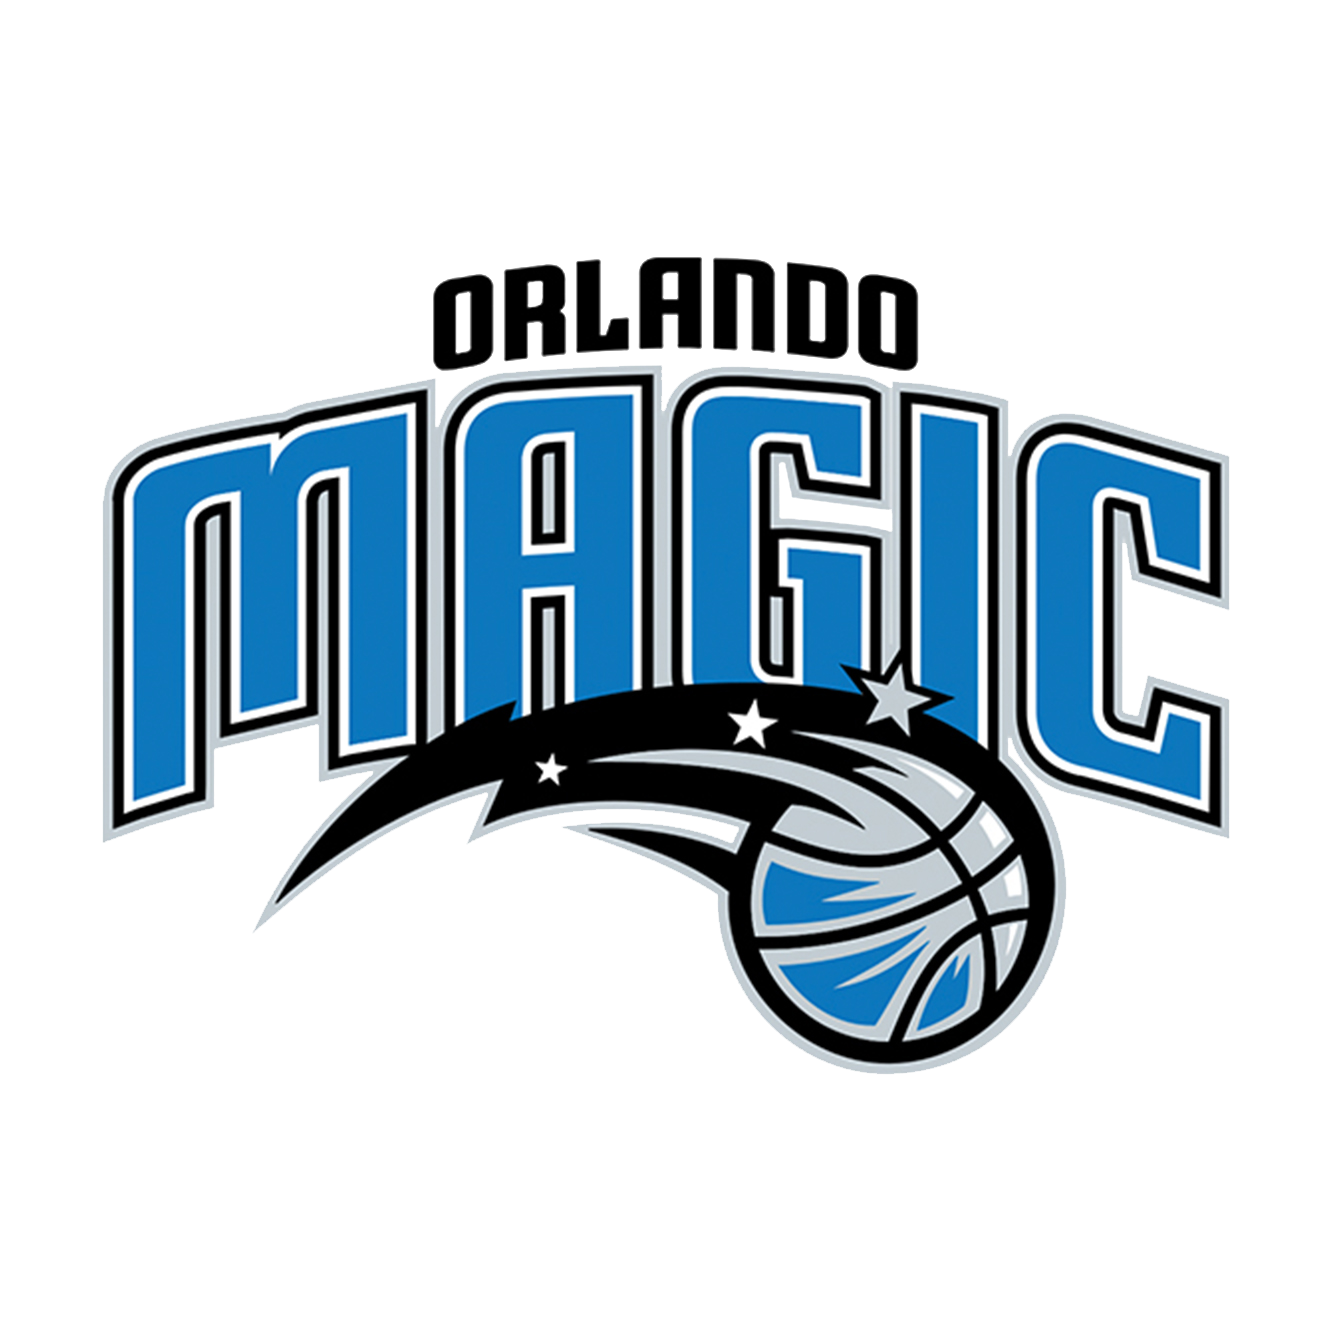 Orlando Magic logo.